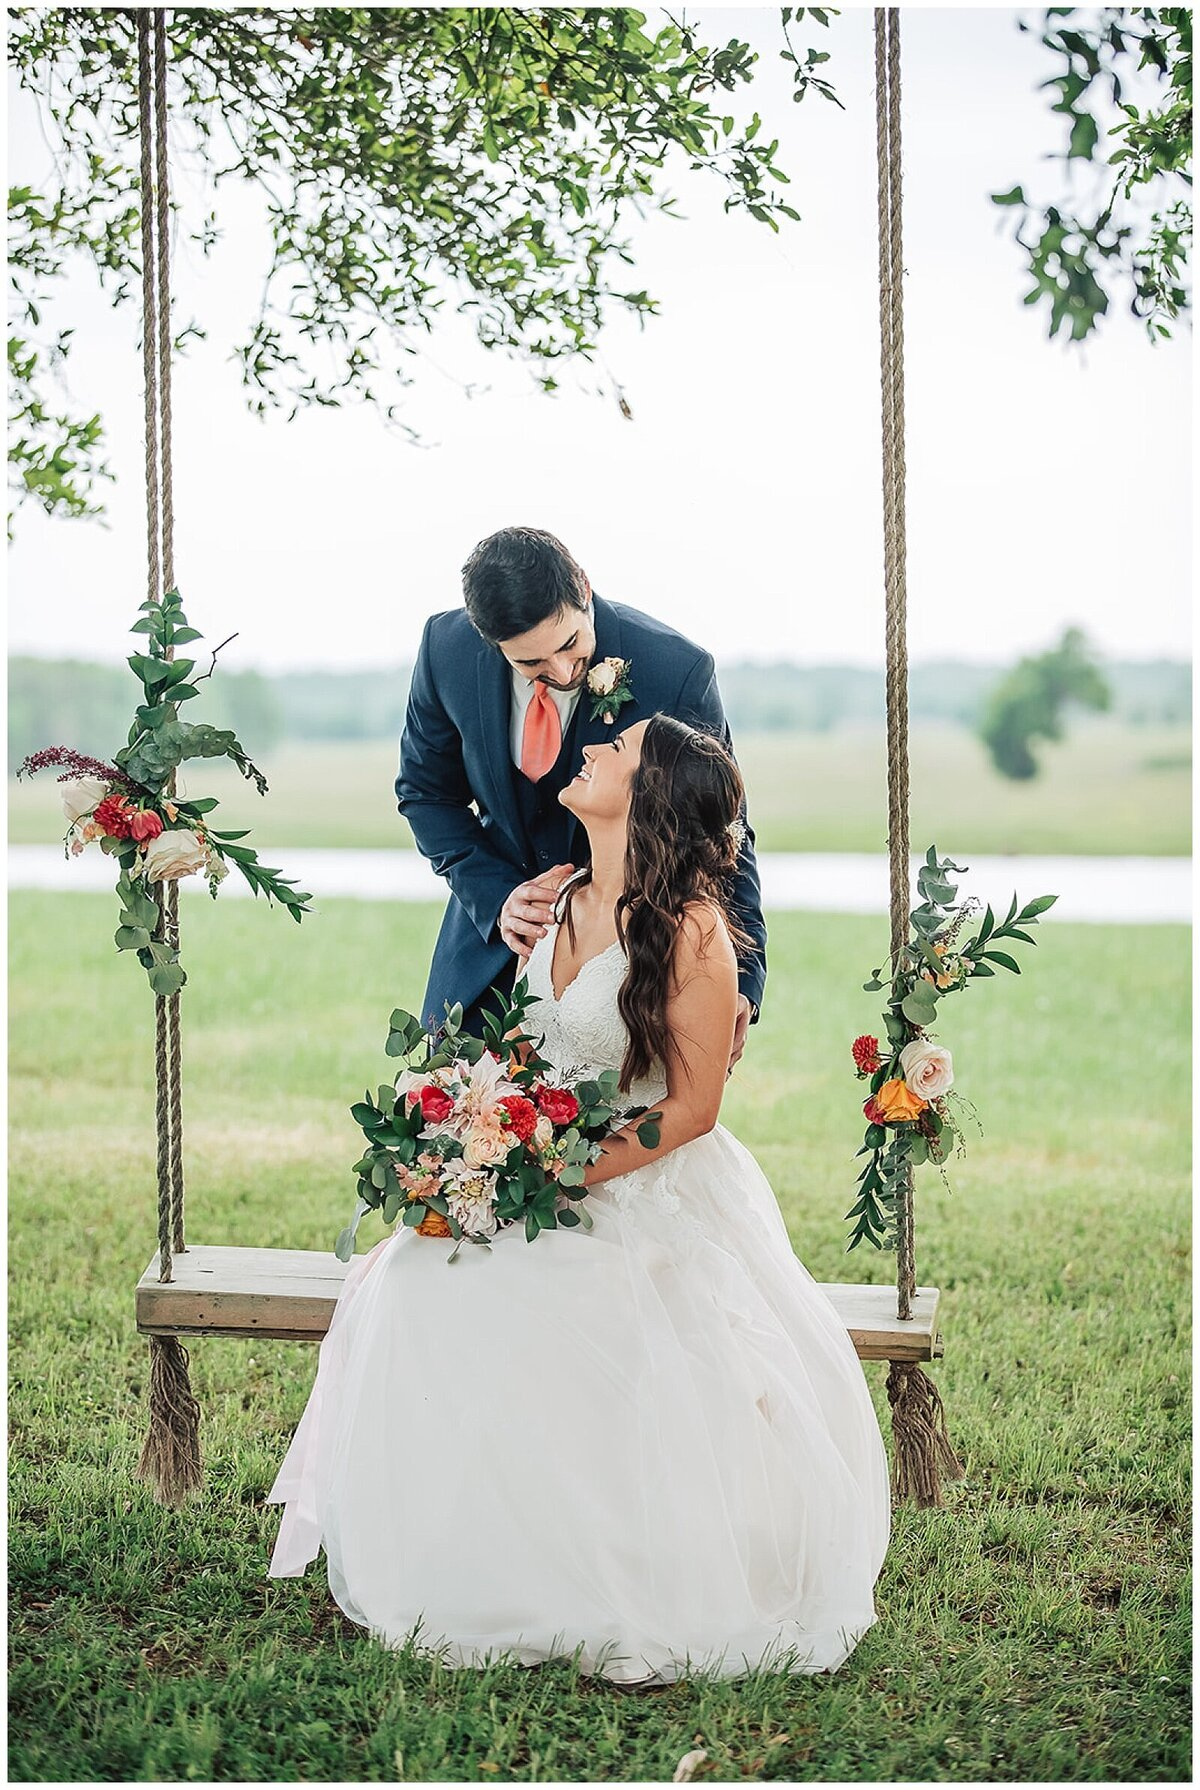 Vibrant Boho Wedding at Emery's Buffalo Creek - Houston Wedding Venue_0051